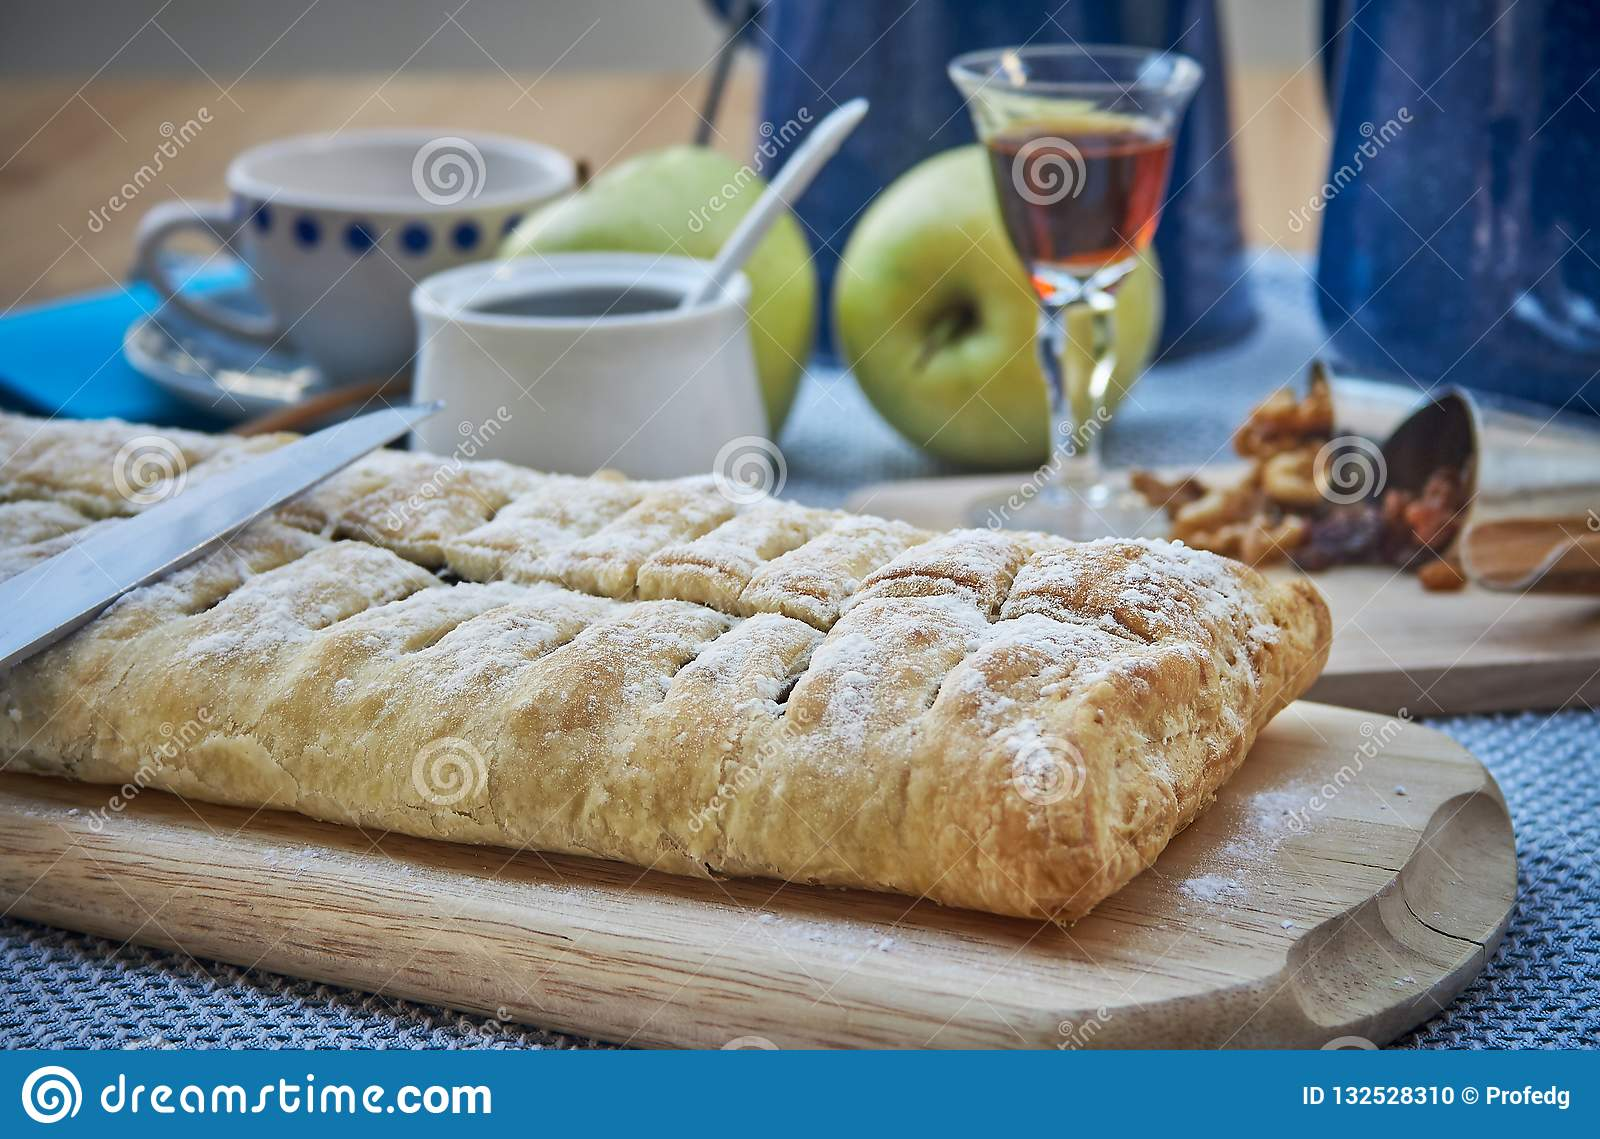 Apple strudel with nuts, raisins, cinnamon and powdered sugar. Homemade apple strudel with fresh apples. Country style apple